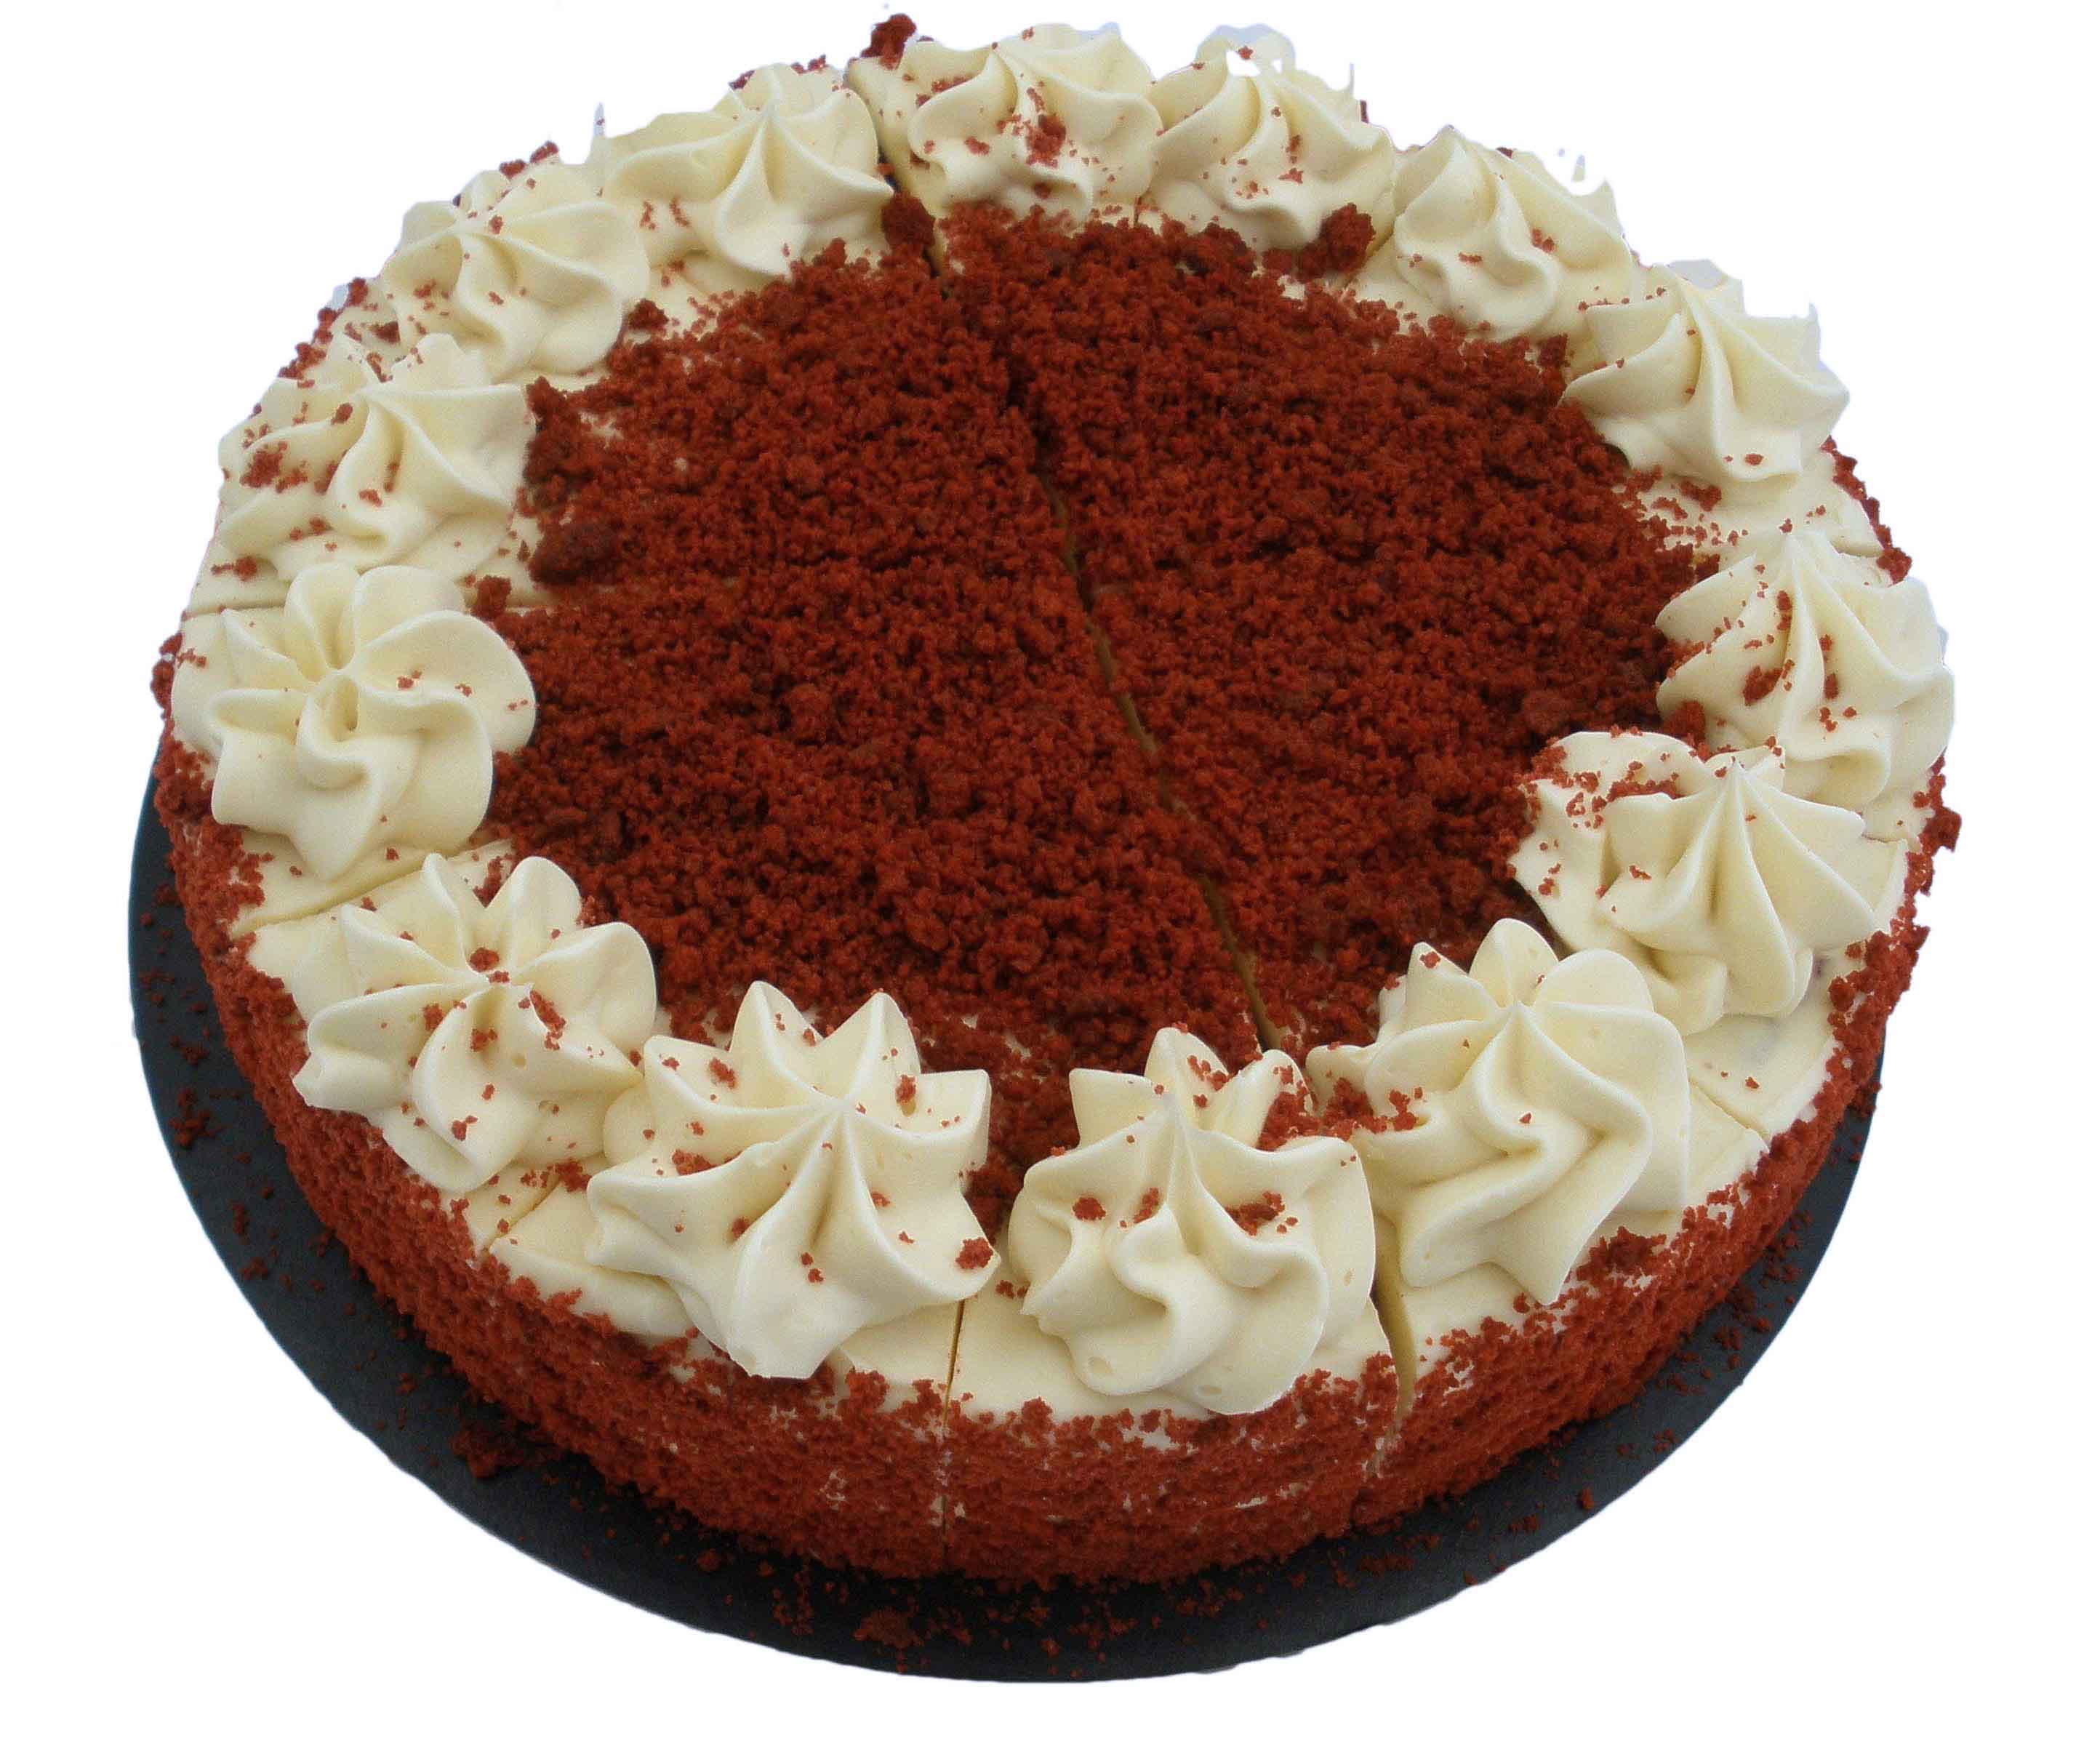 https://0901.nccdn.net/4_2/000/000/038/2d3/red-velvet-buffet-cake-low-res.jpg